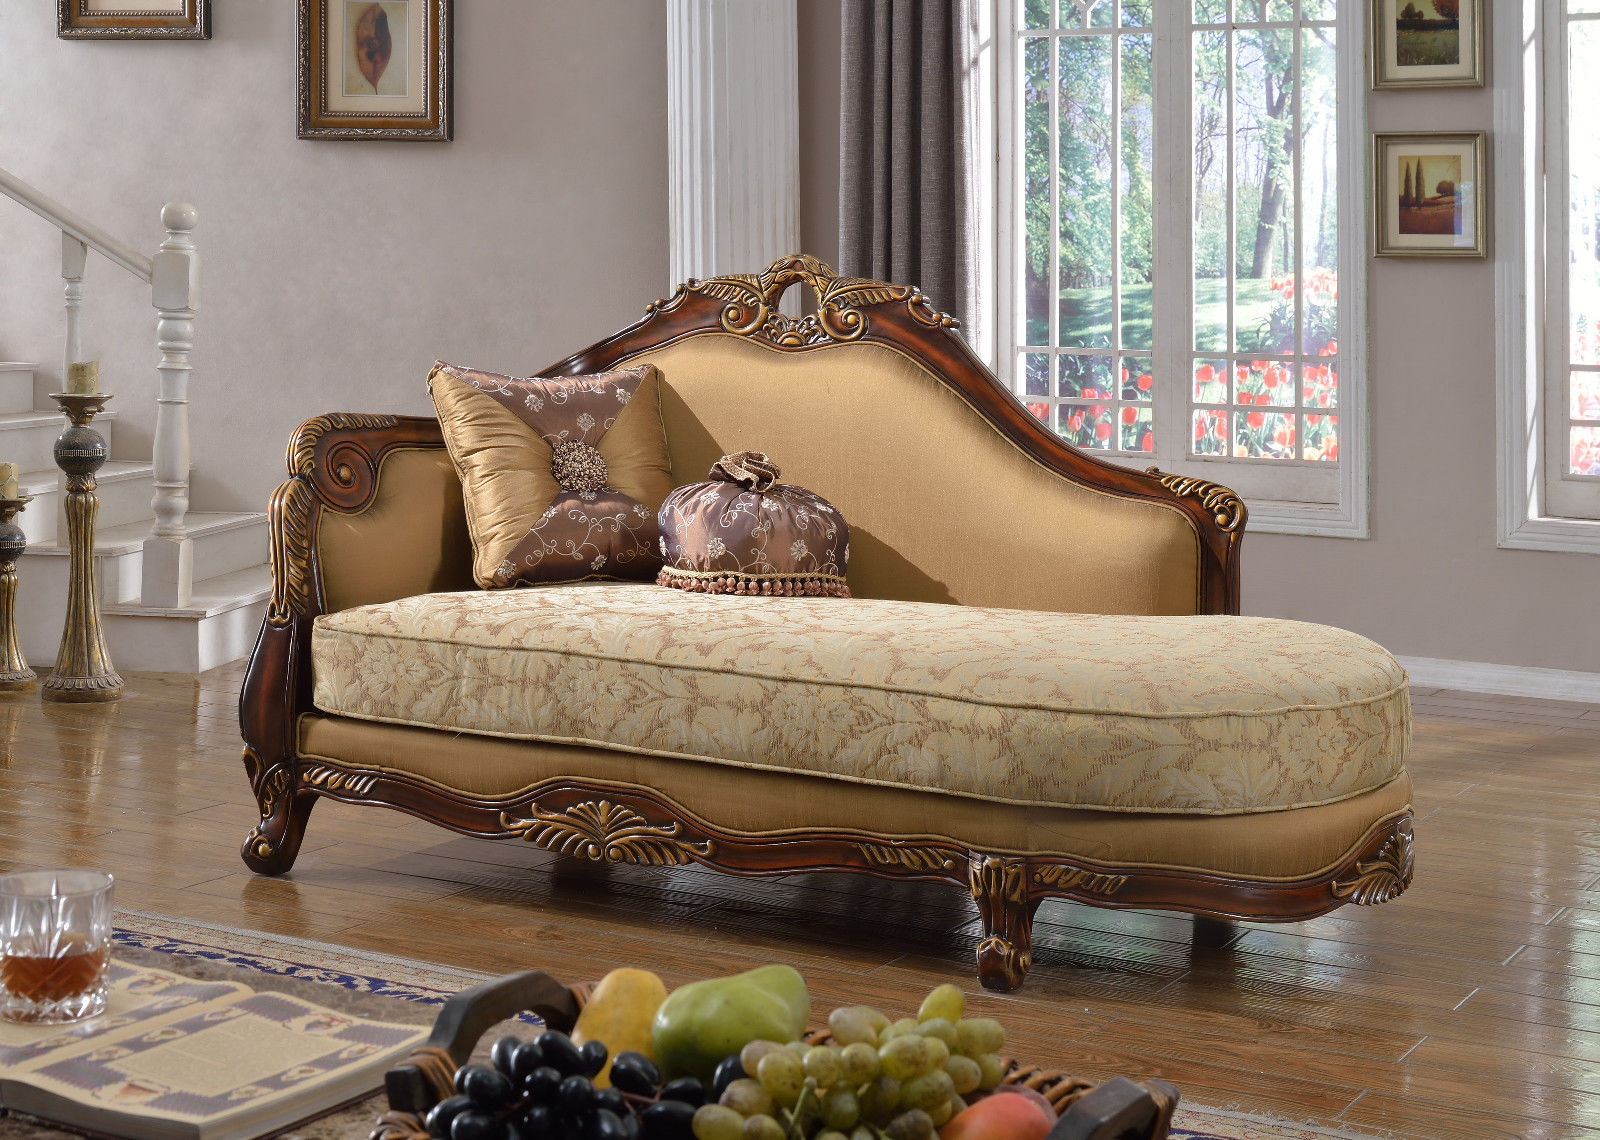 Meridian 623 Loretto Living Room Chaise in Antique Brown Traditional Style